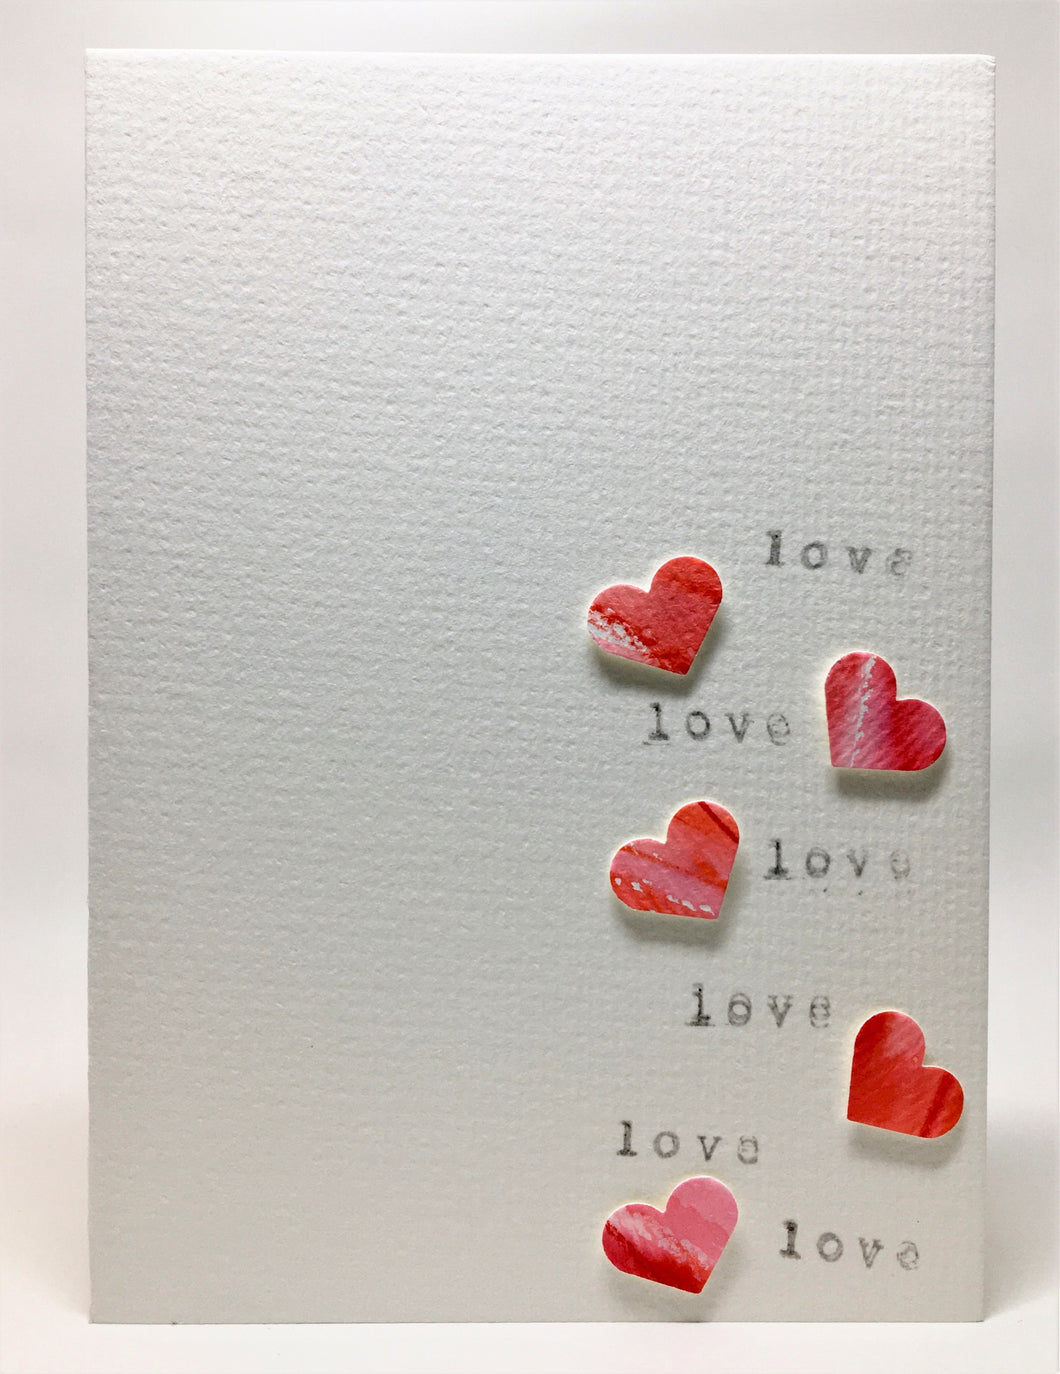 Original Hand Painted Greeting Card - 5 Hearts and Love